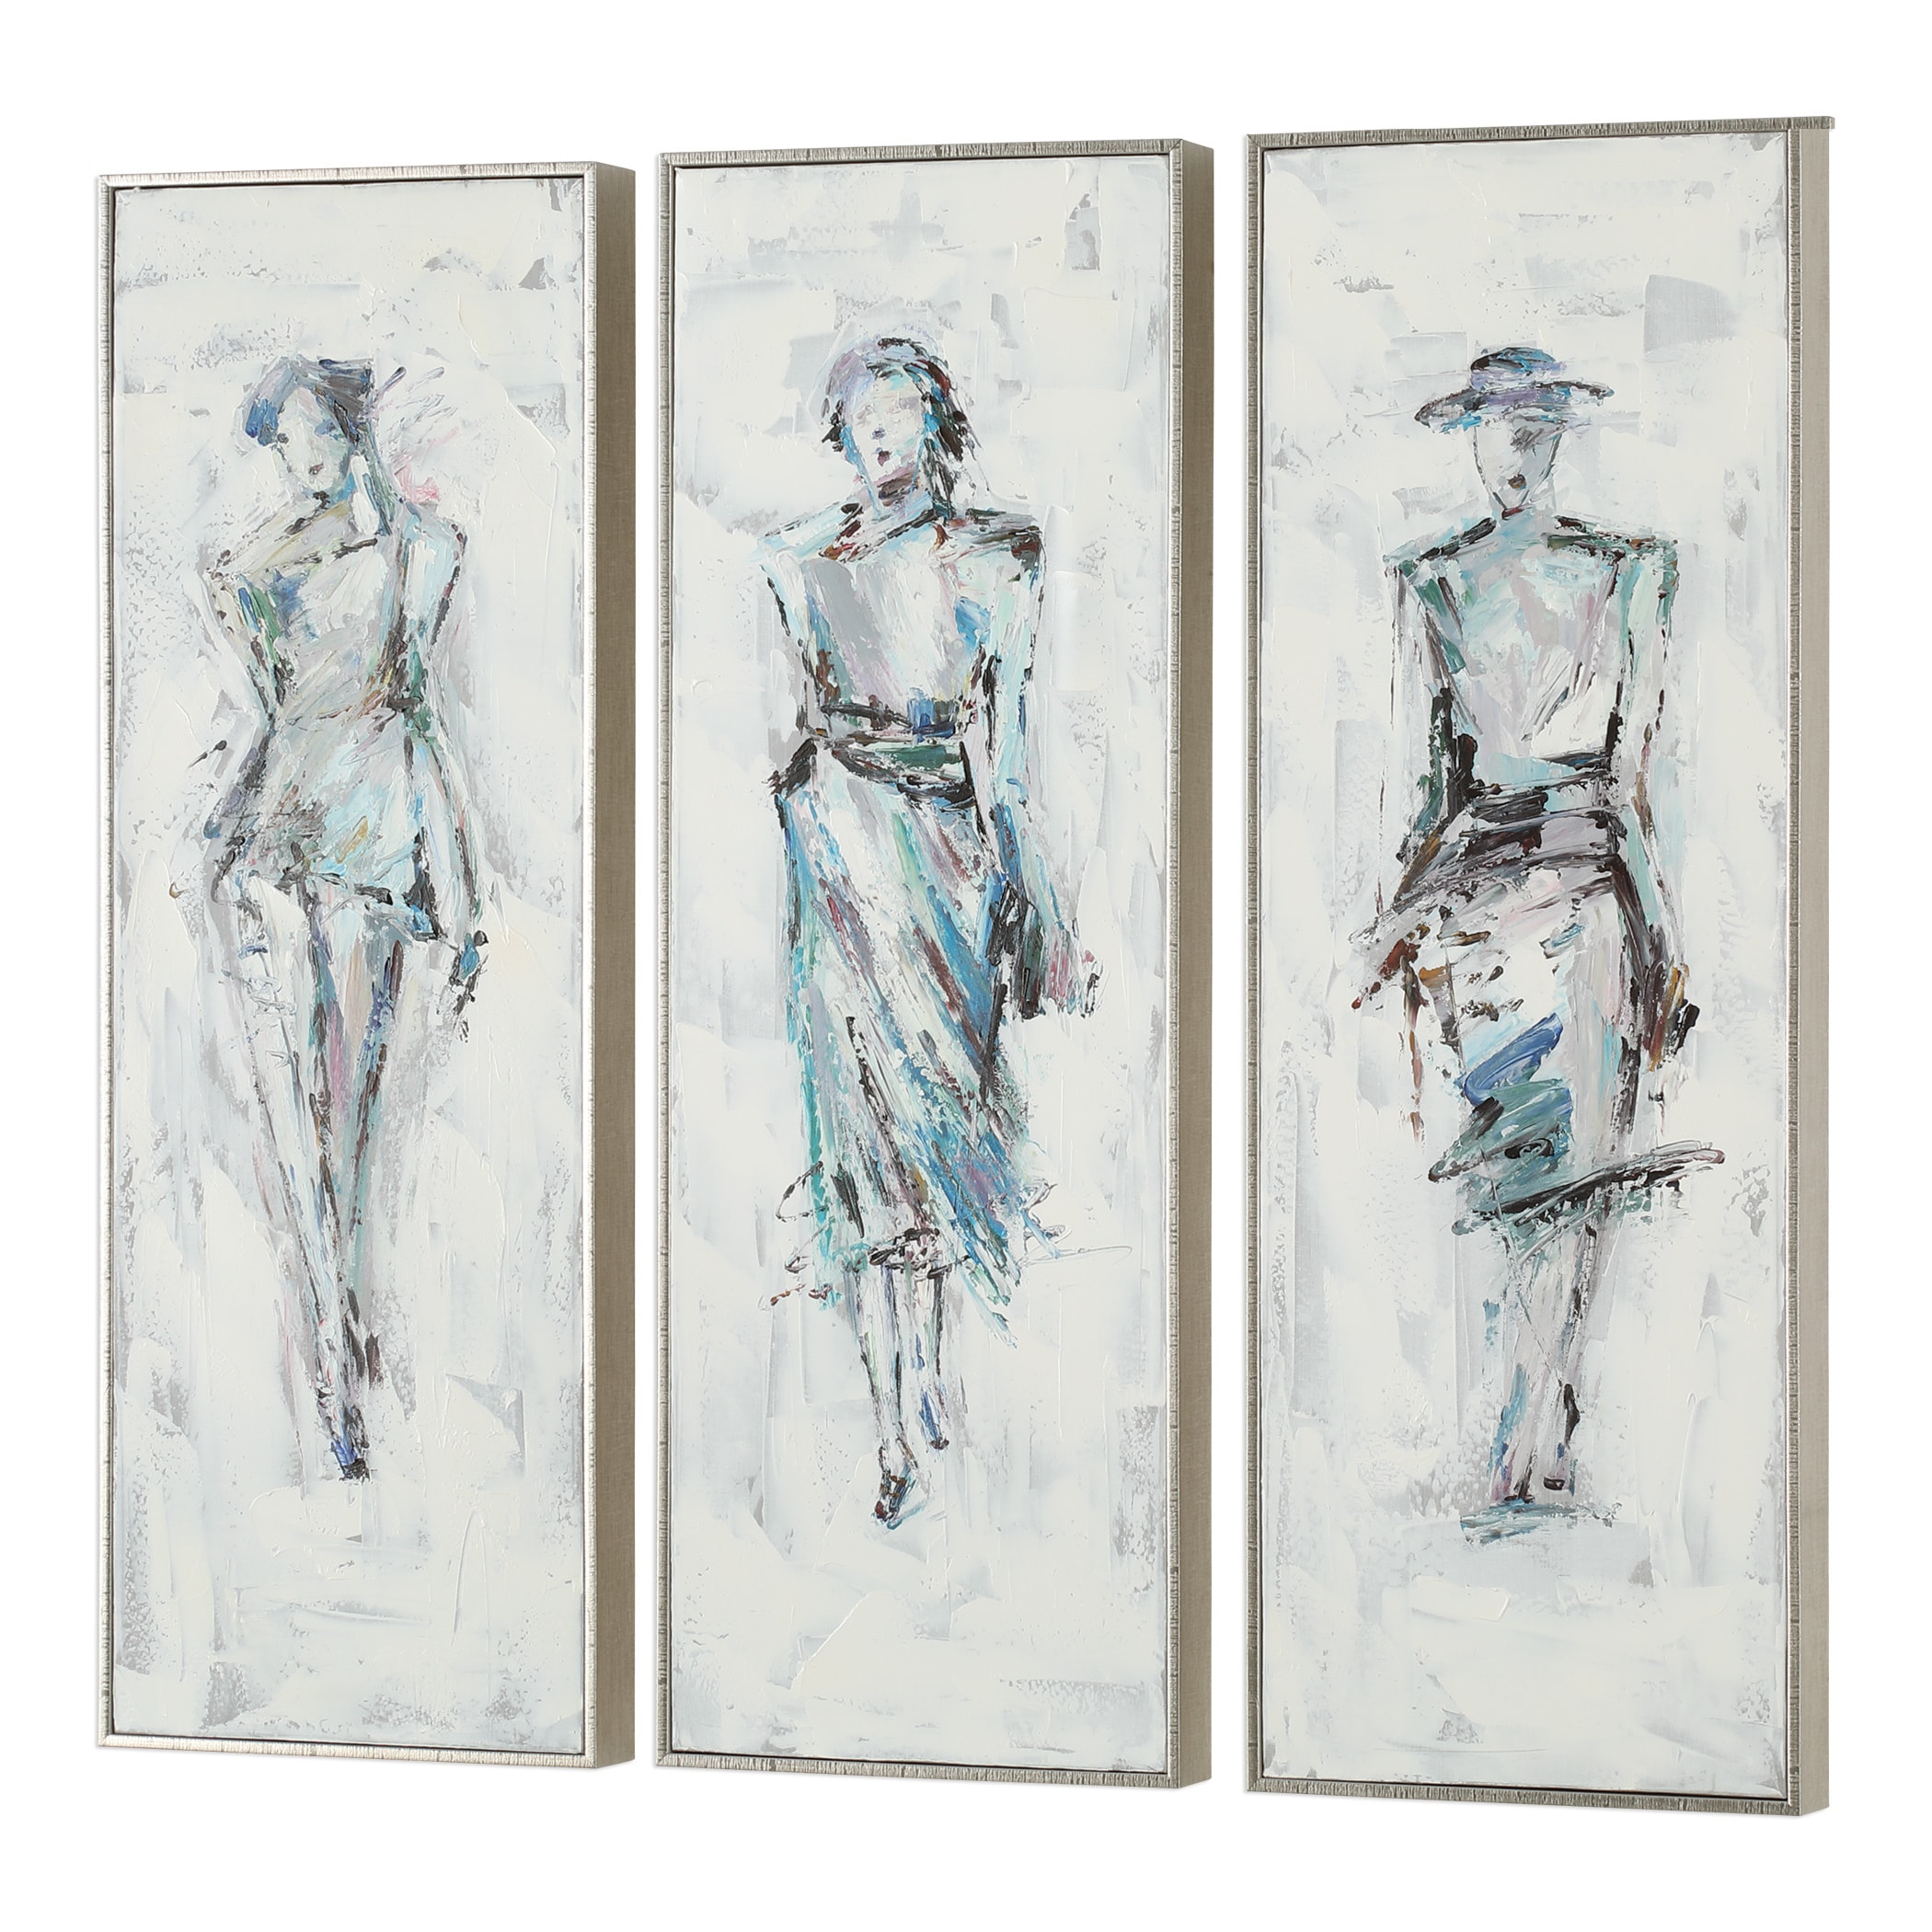 Uttermost Styling Hand Painted Arts (Set of 3)